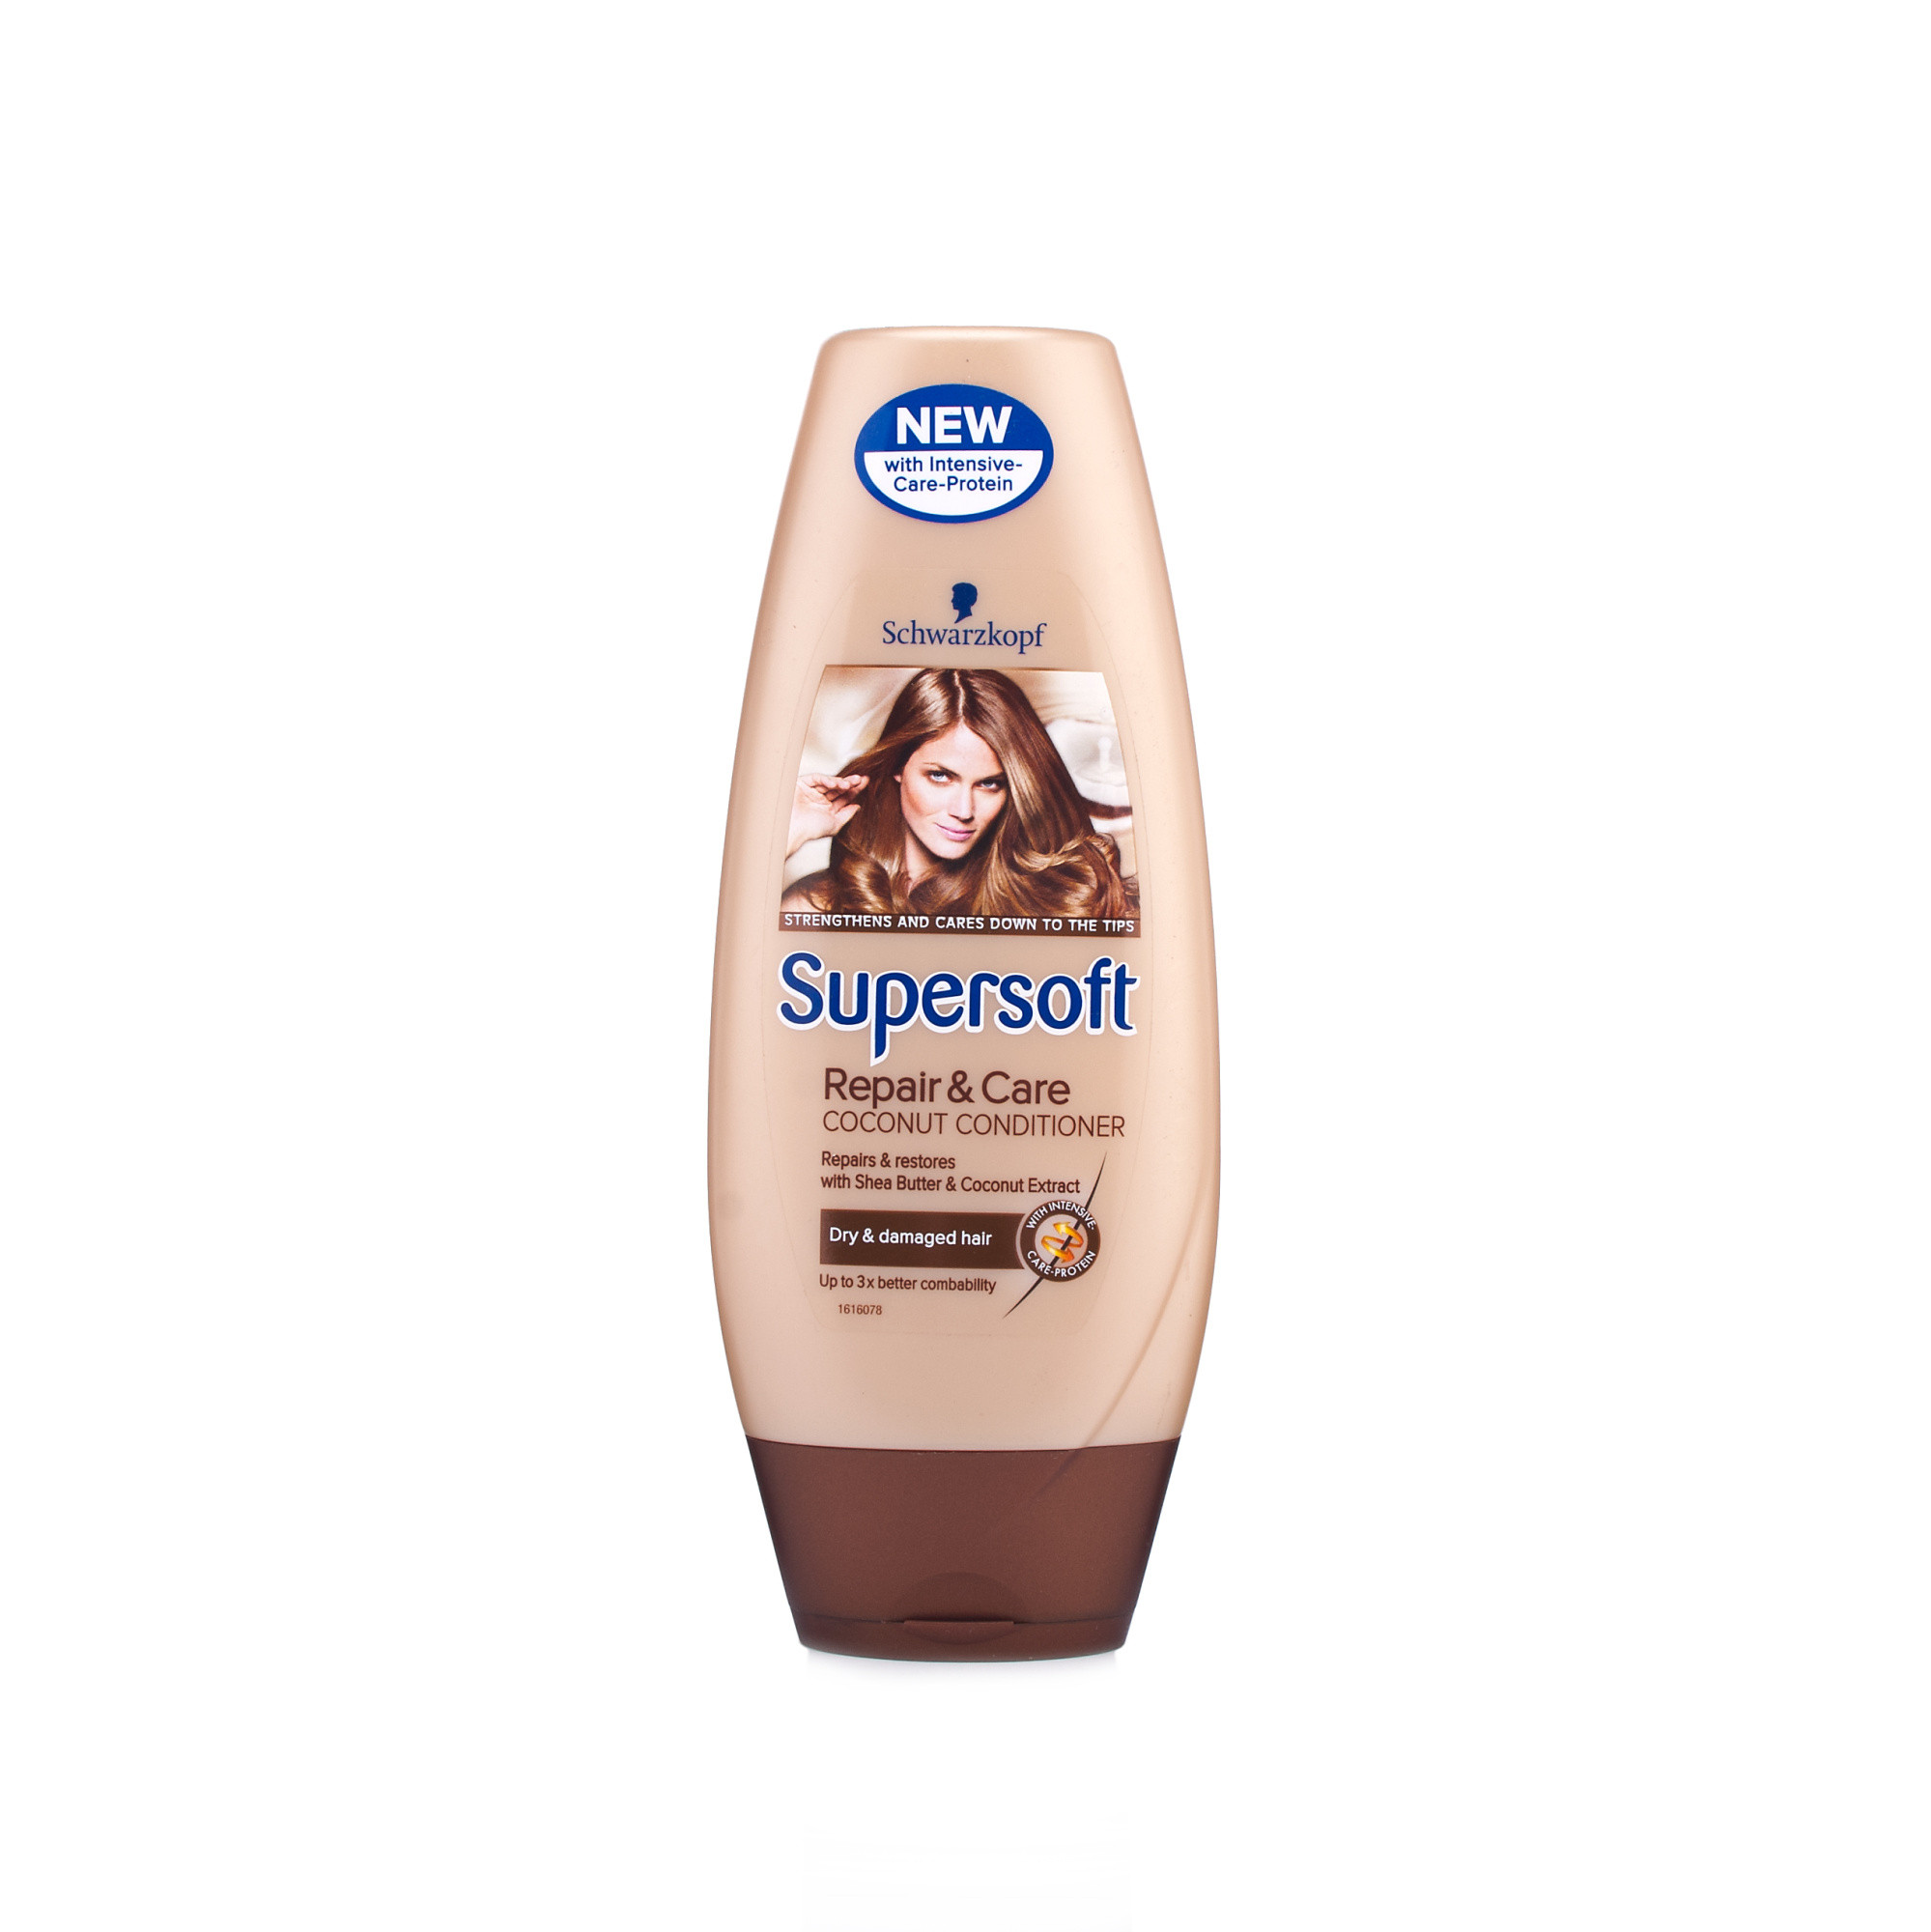 Schwarzkopf Supersoft Repair & Care Conditioner